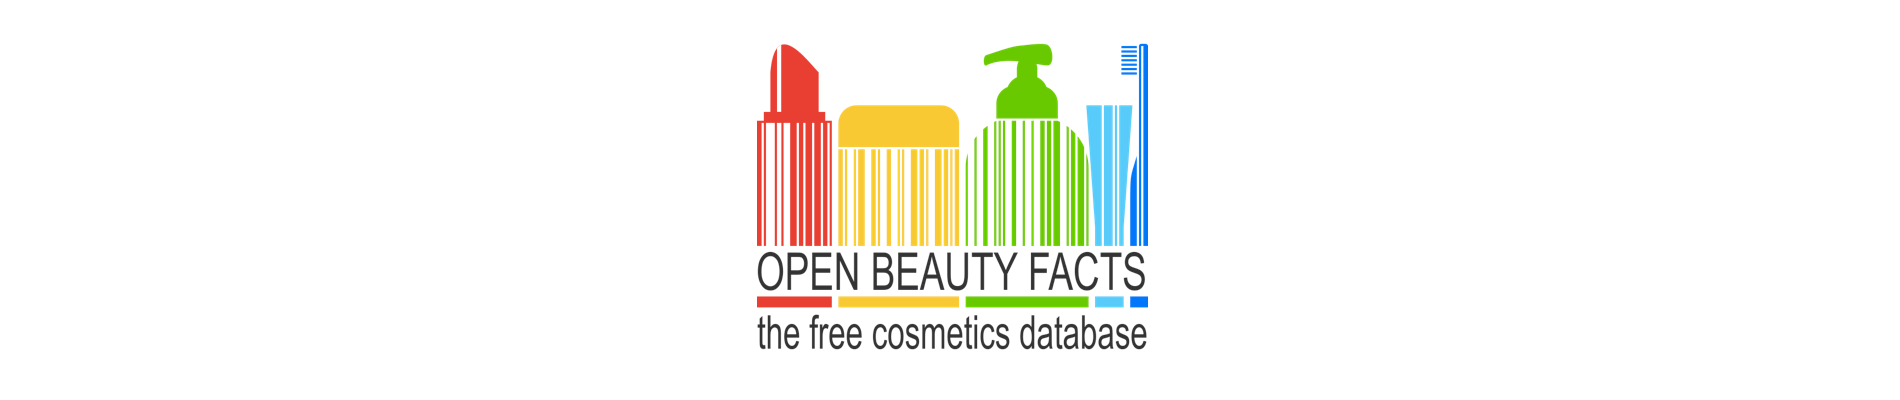 Open Beauty Facts | Kaggle